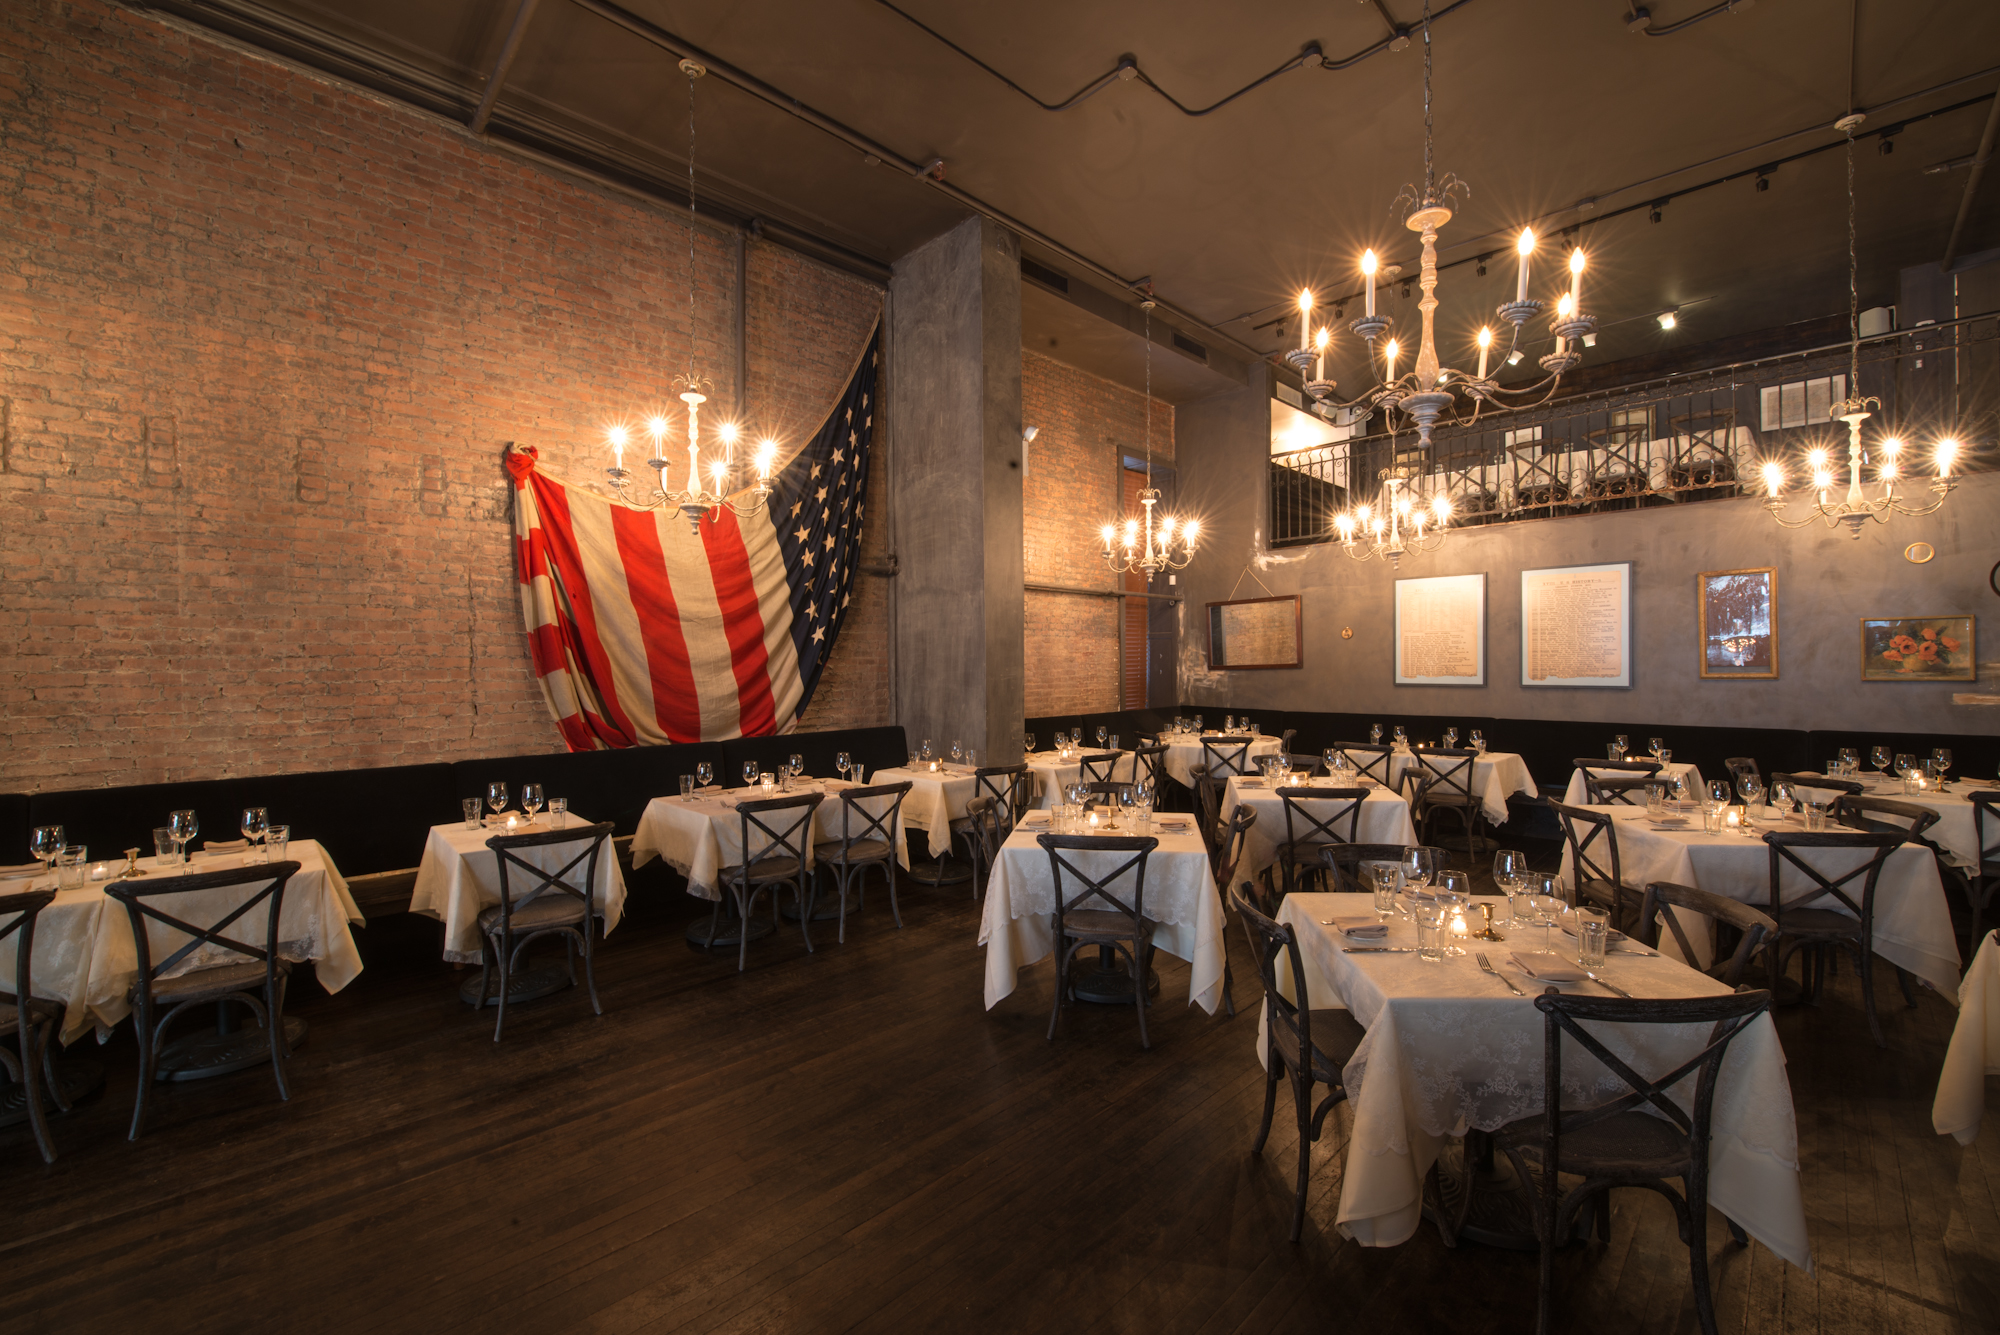 Full Venue event space at Harding's in New York City, NYC, NY/NJ Area